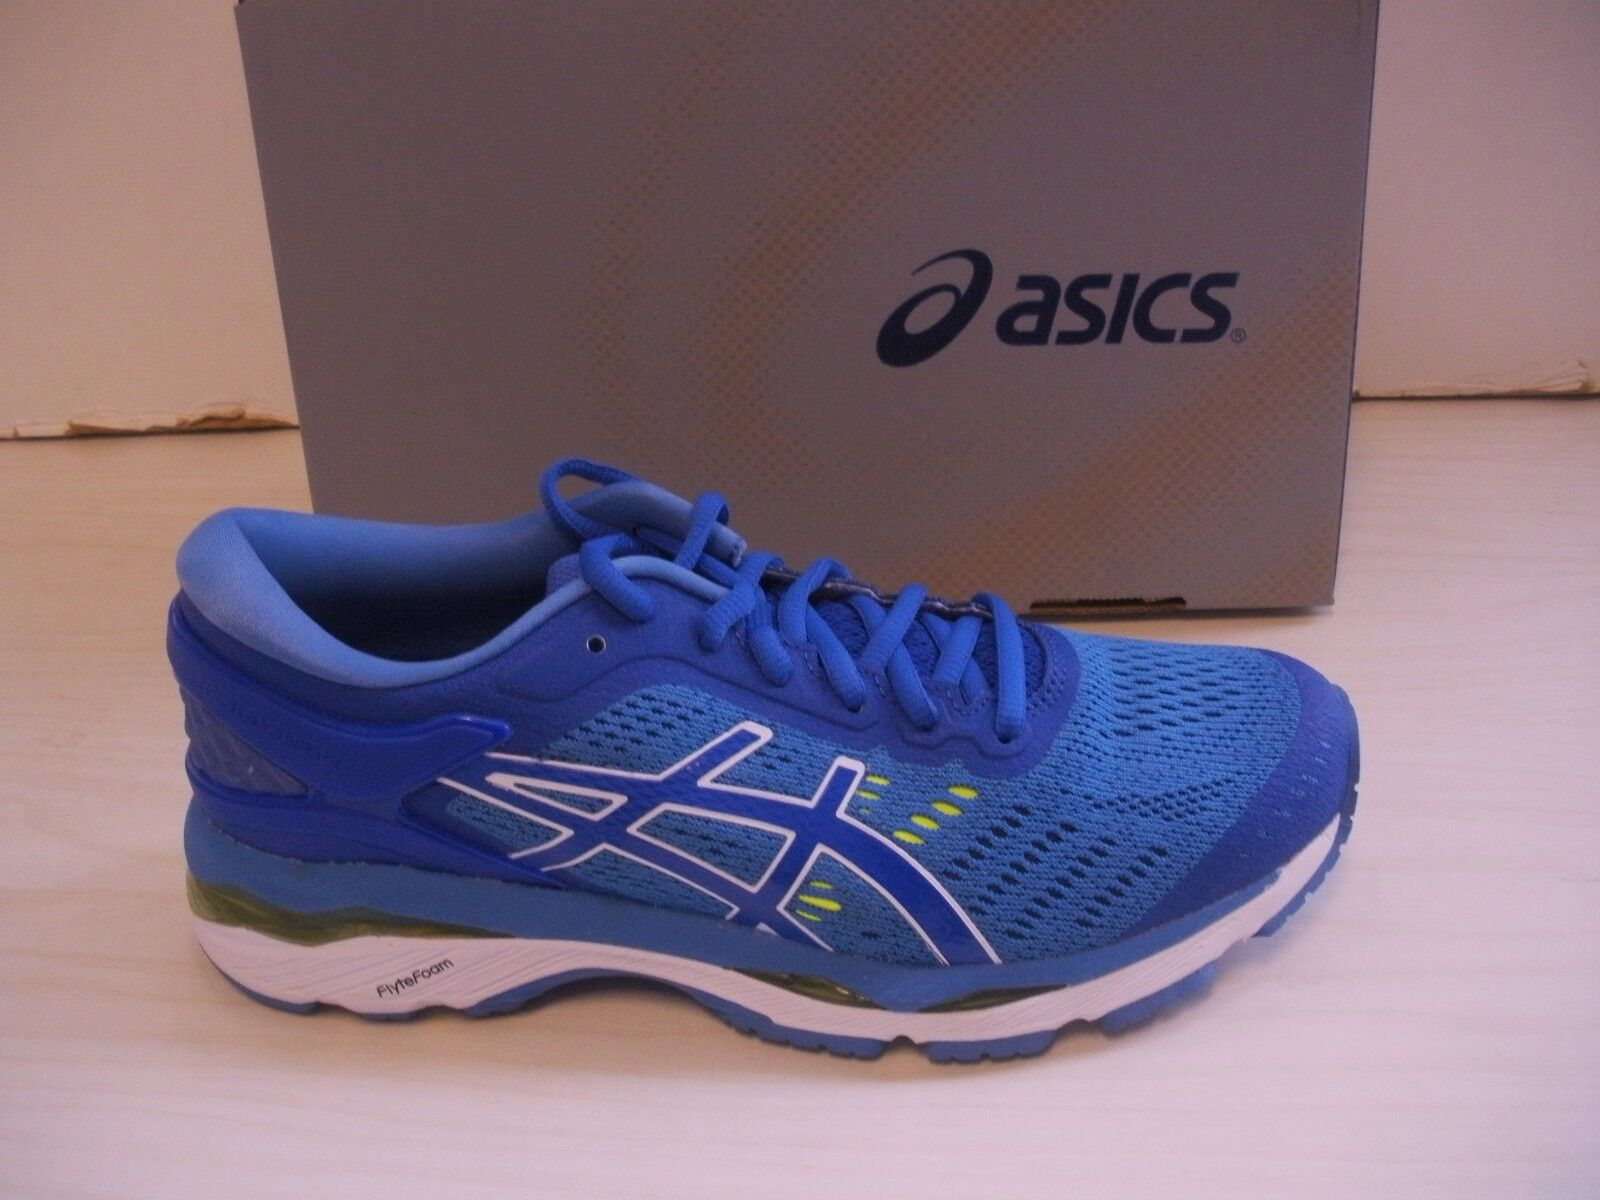 ASICS WOMENS GEL-KAYANO 24 RUNNING SNEAKERS-SHOES-T799N -4840- blueE PURPLE  R BL